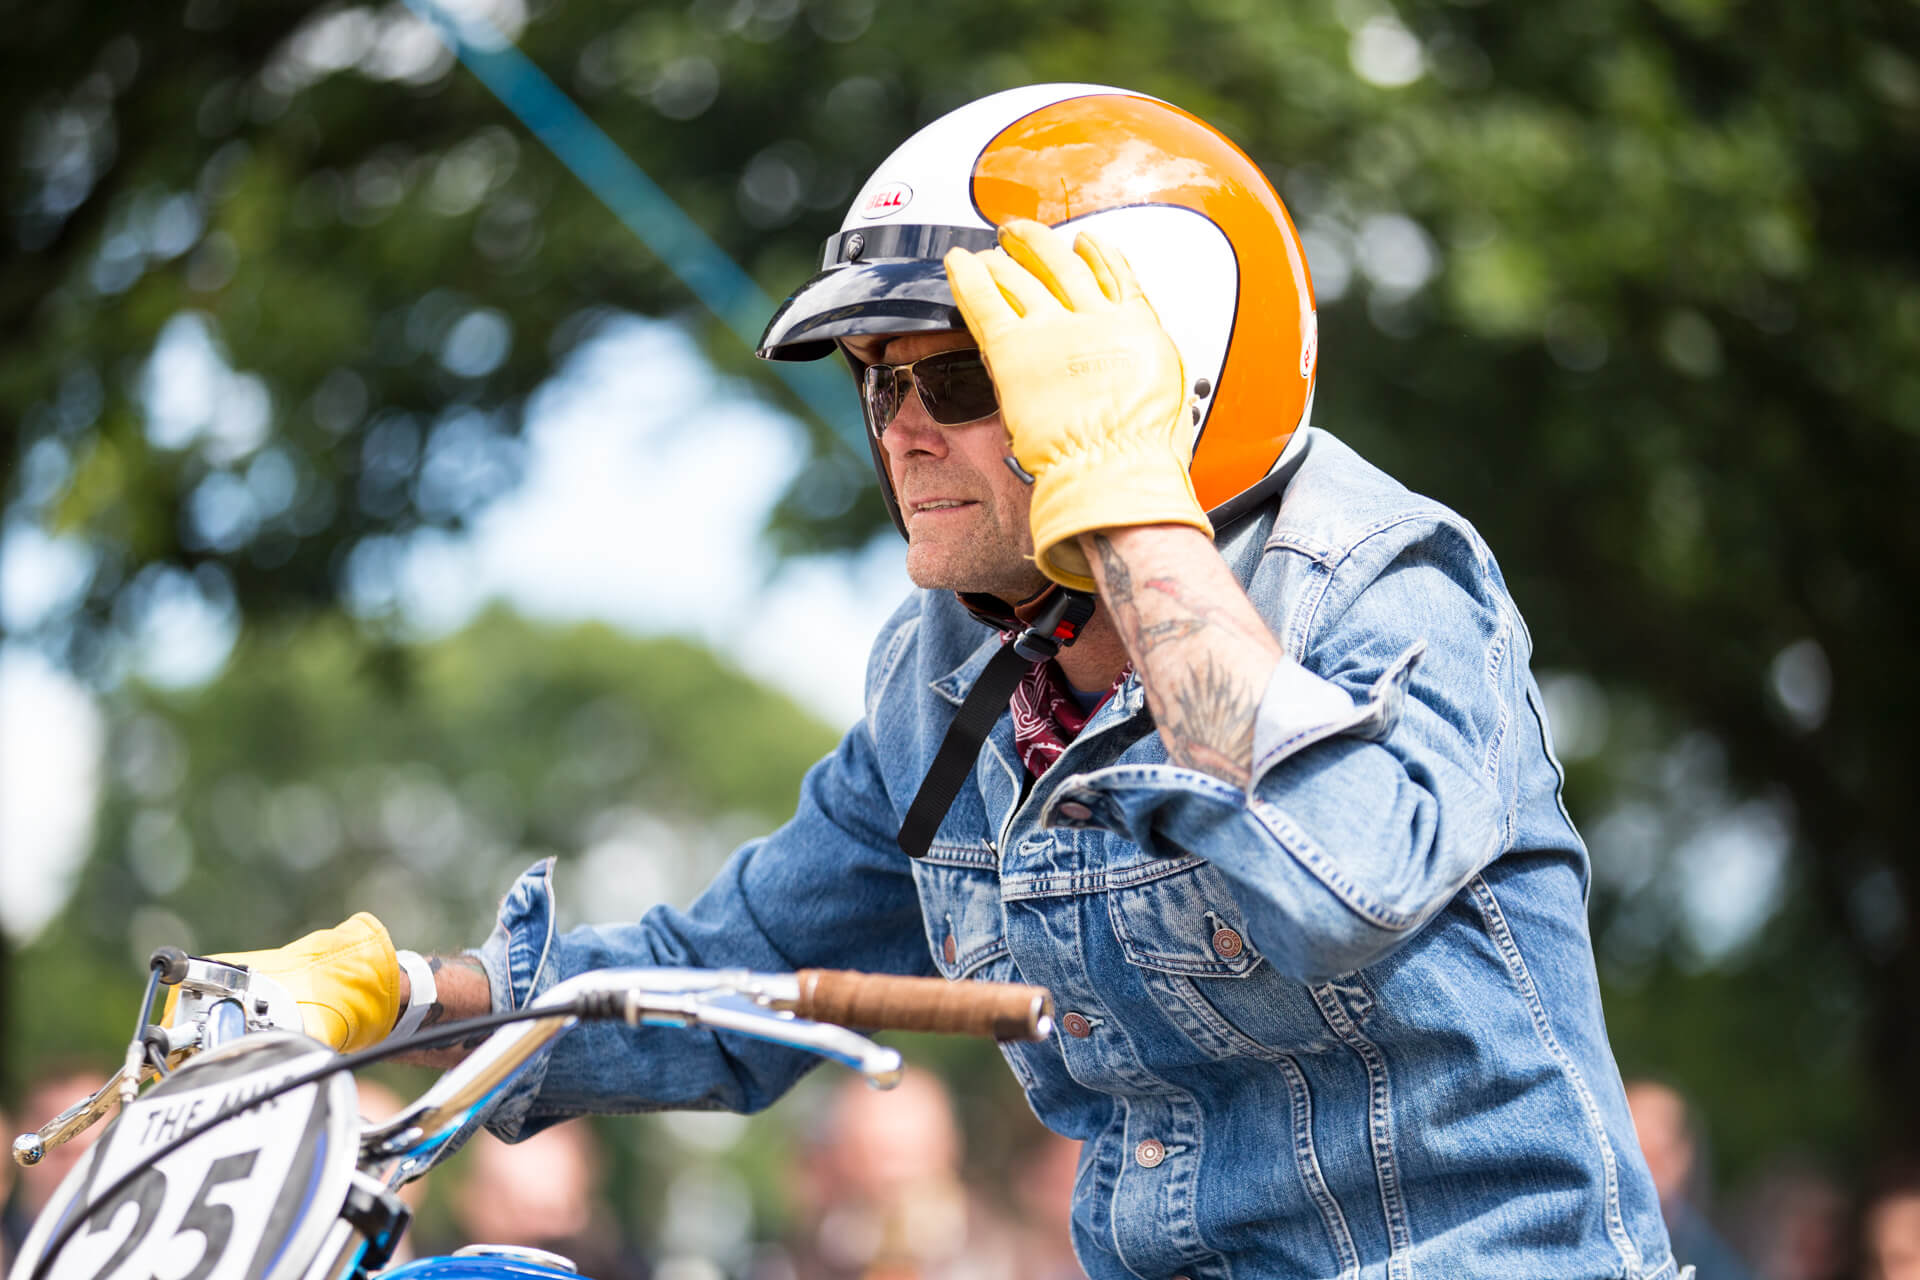 Malle Mile, Event, Motorcycle, Richard, Summer, WeAreShuffle, Agency, Photography, Film, Production, Malle London, Triumph, Flag, Biker, Field, Race, Helmet, Dirt, Ready